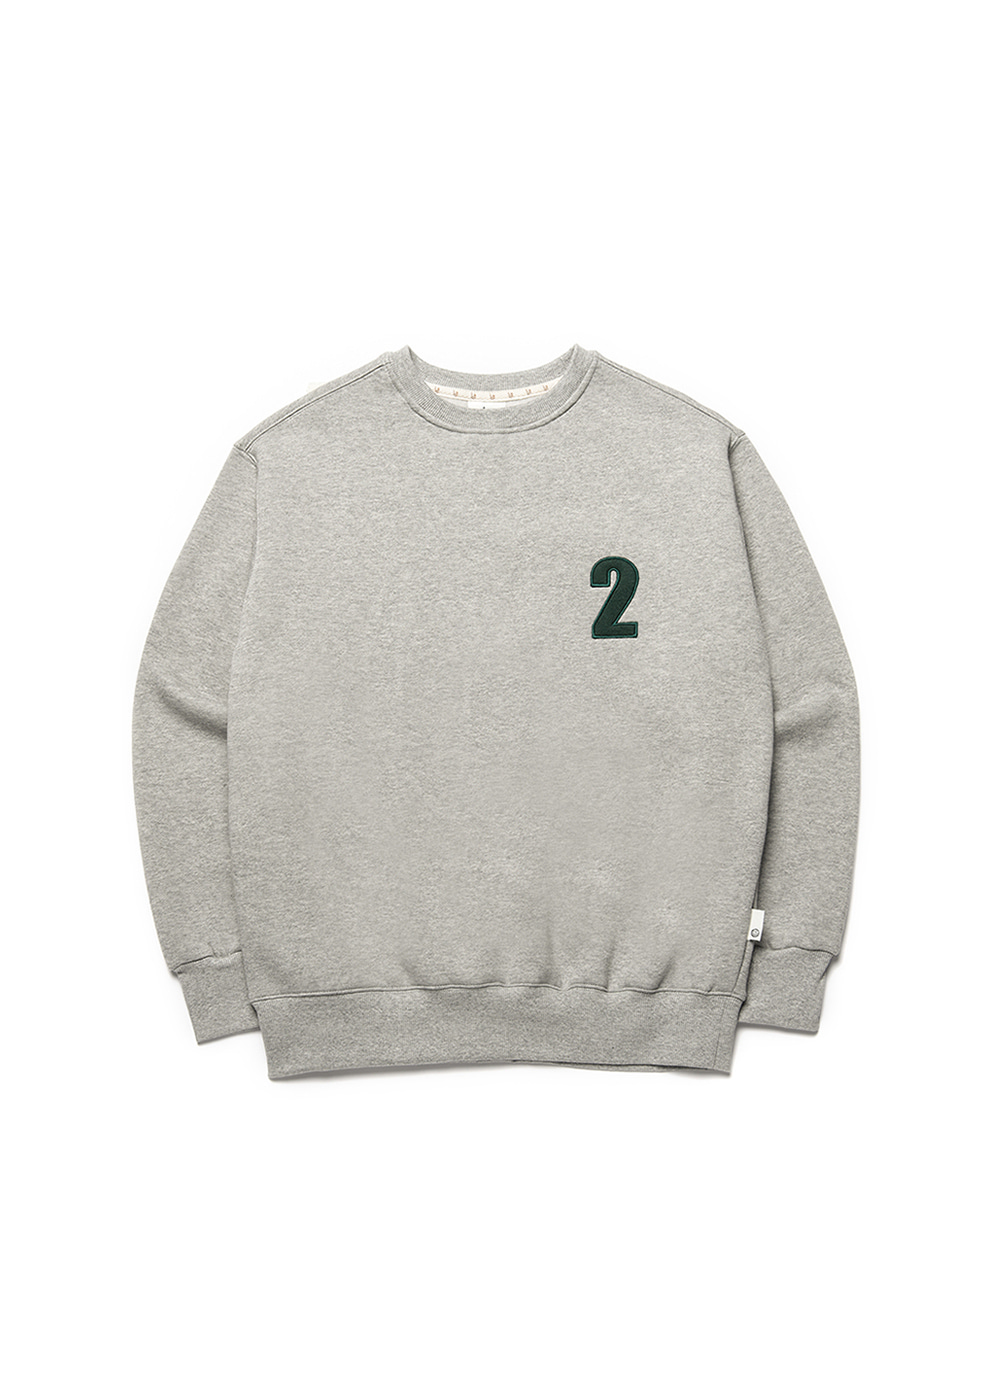 2 Logo sweat shirt [melange]